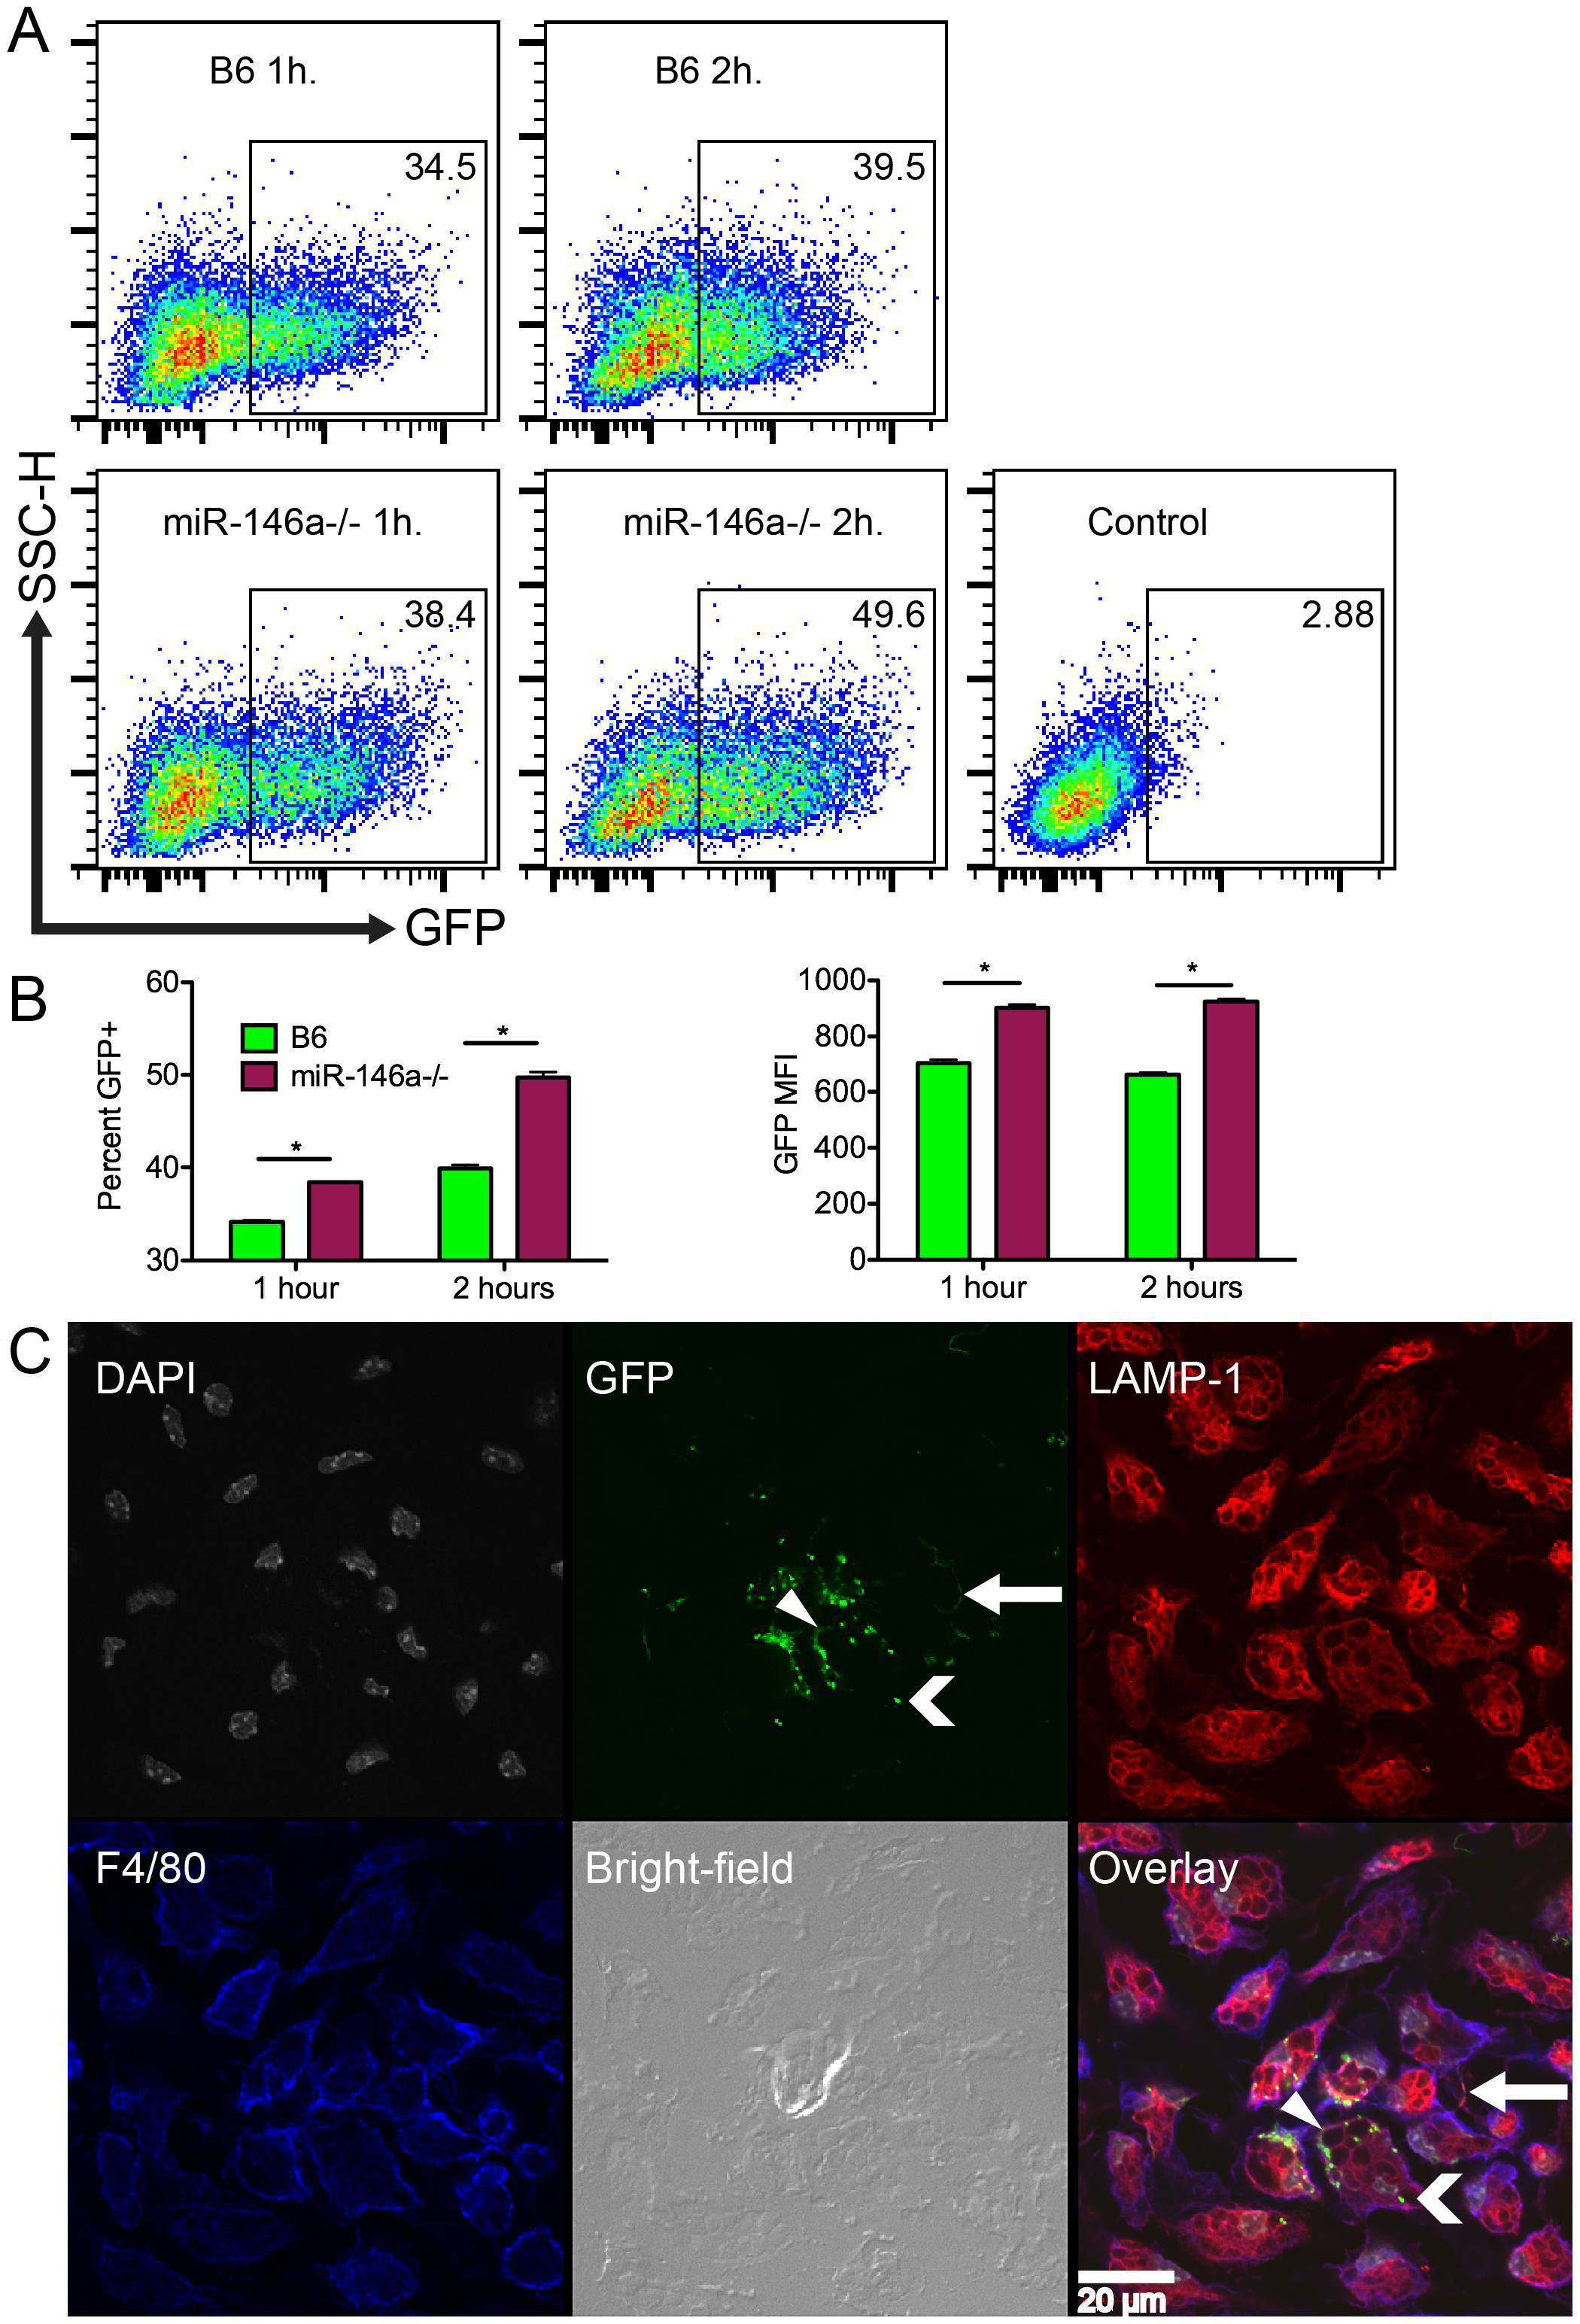 B6 miR-146a<sup>−/−</sup> peritoneal macrophages exhibit increased phagocytic activity.